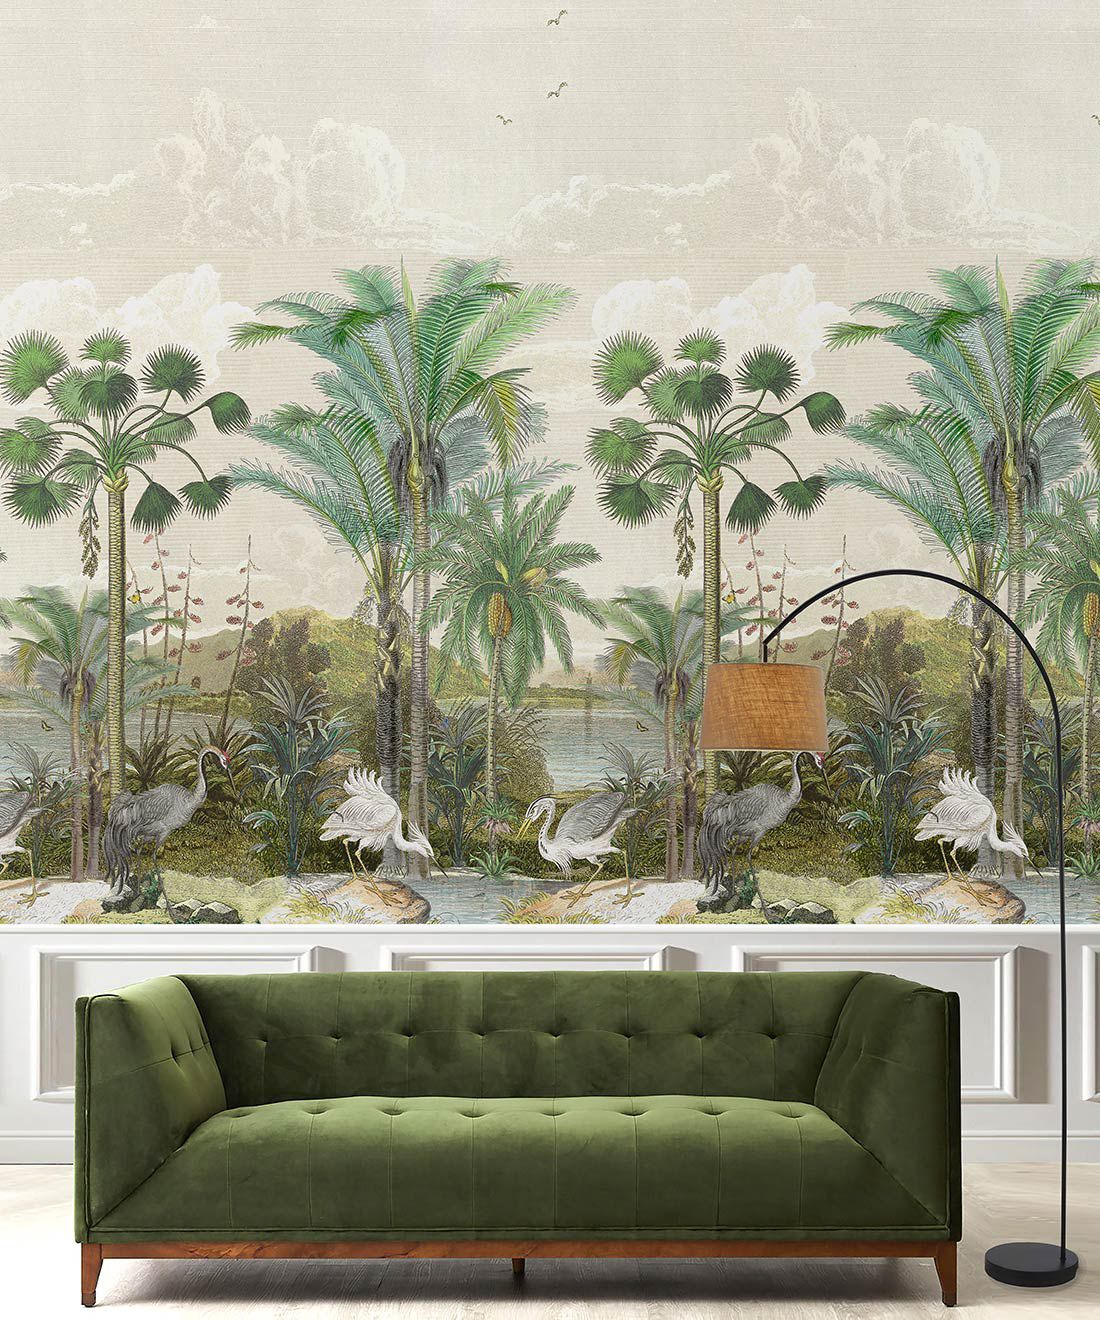 Indian Subcontinent Wallpaper Mural •Bethany Linz • Palm Tree Mural • Beige • Insitu